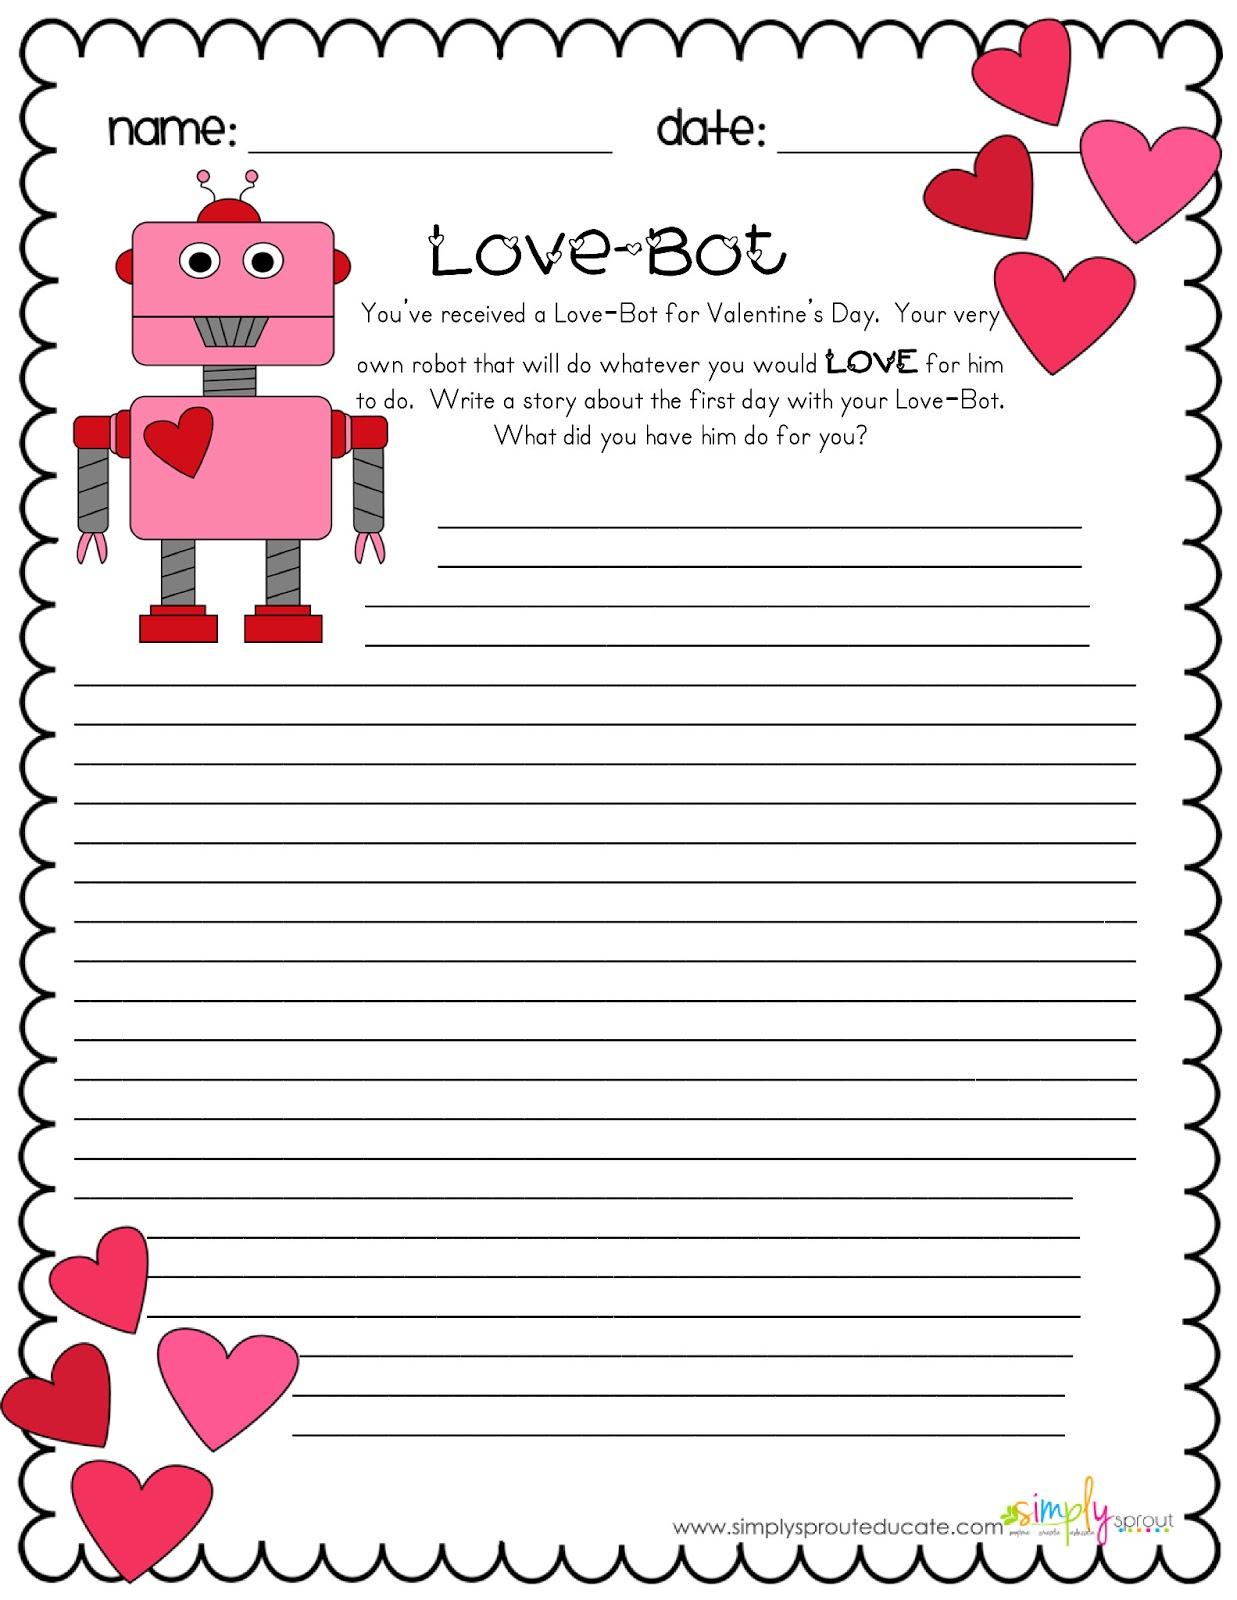 Elegant Simple Valentines Day Writing Activity for Kids Collections